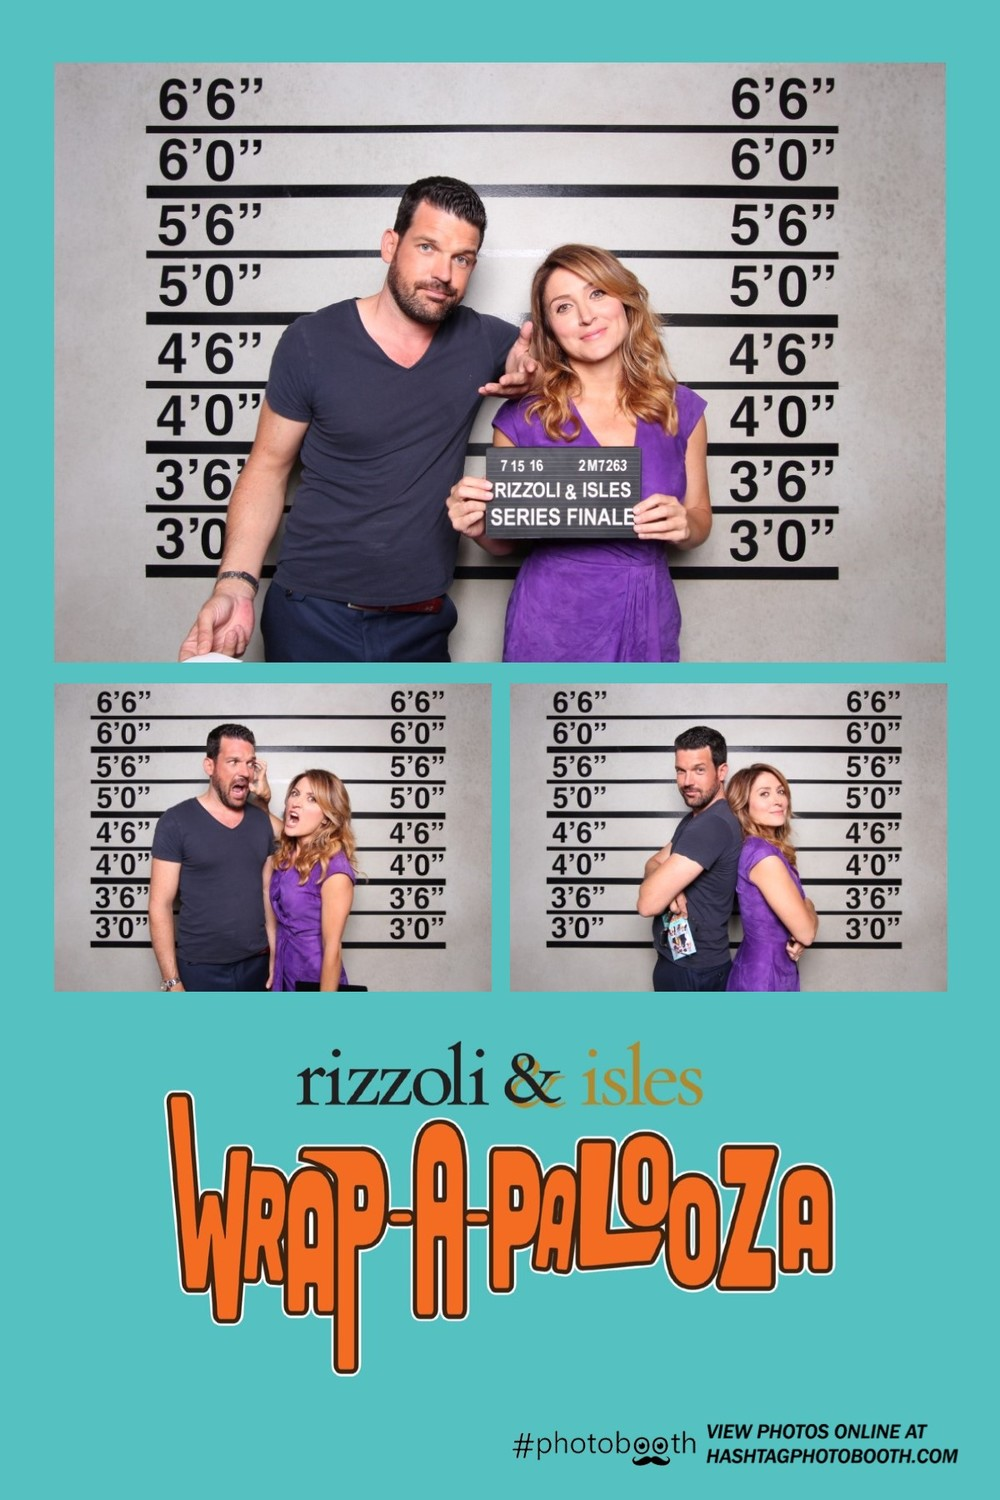 Rizzoli & Isles Wrap Party